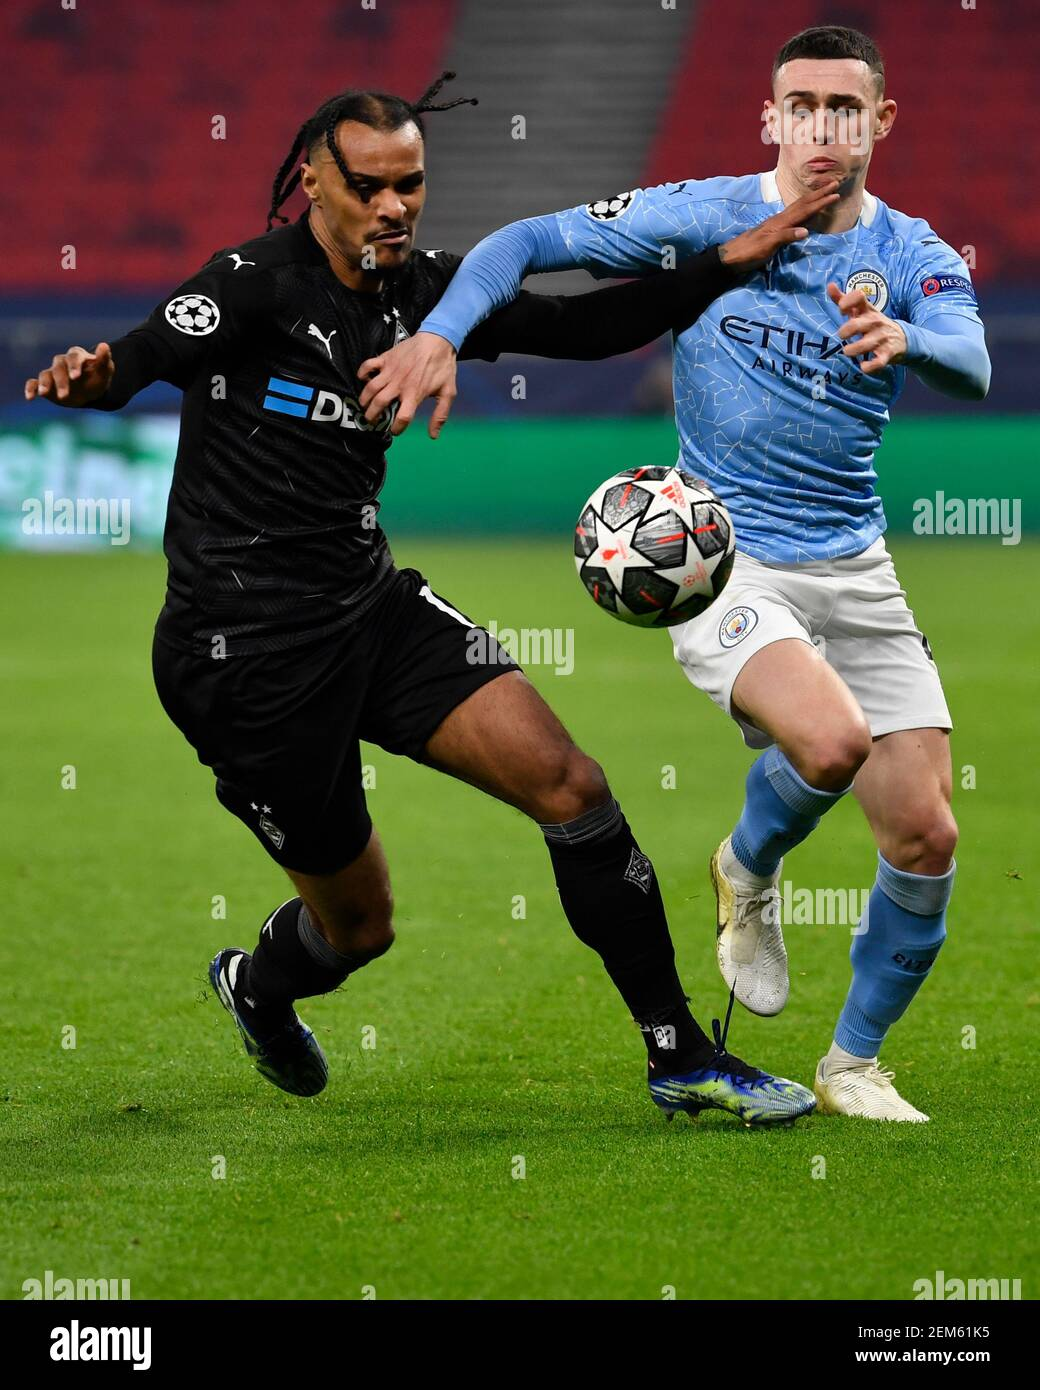 Budapest, Hungary. 24th Feb, 2021. Football: Champions League, Borussia Mönchengladbach - Manchester City, knockout round, round of 16, first leg at Puskas Arena. Gladbach's Valentino Lazaro and Manchester City's Phil Foden (r) in action. Credit: Marton Monus/dpa/Alamy Live News Stock Photo